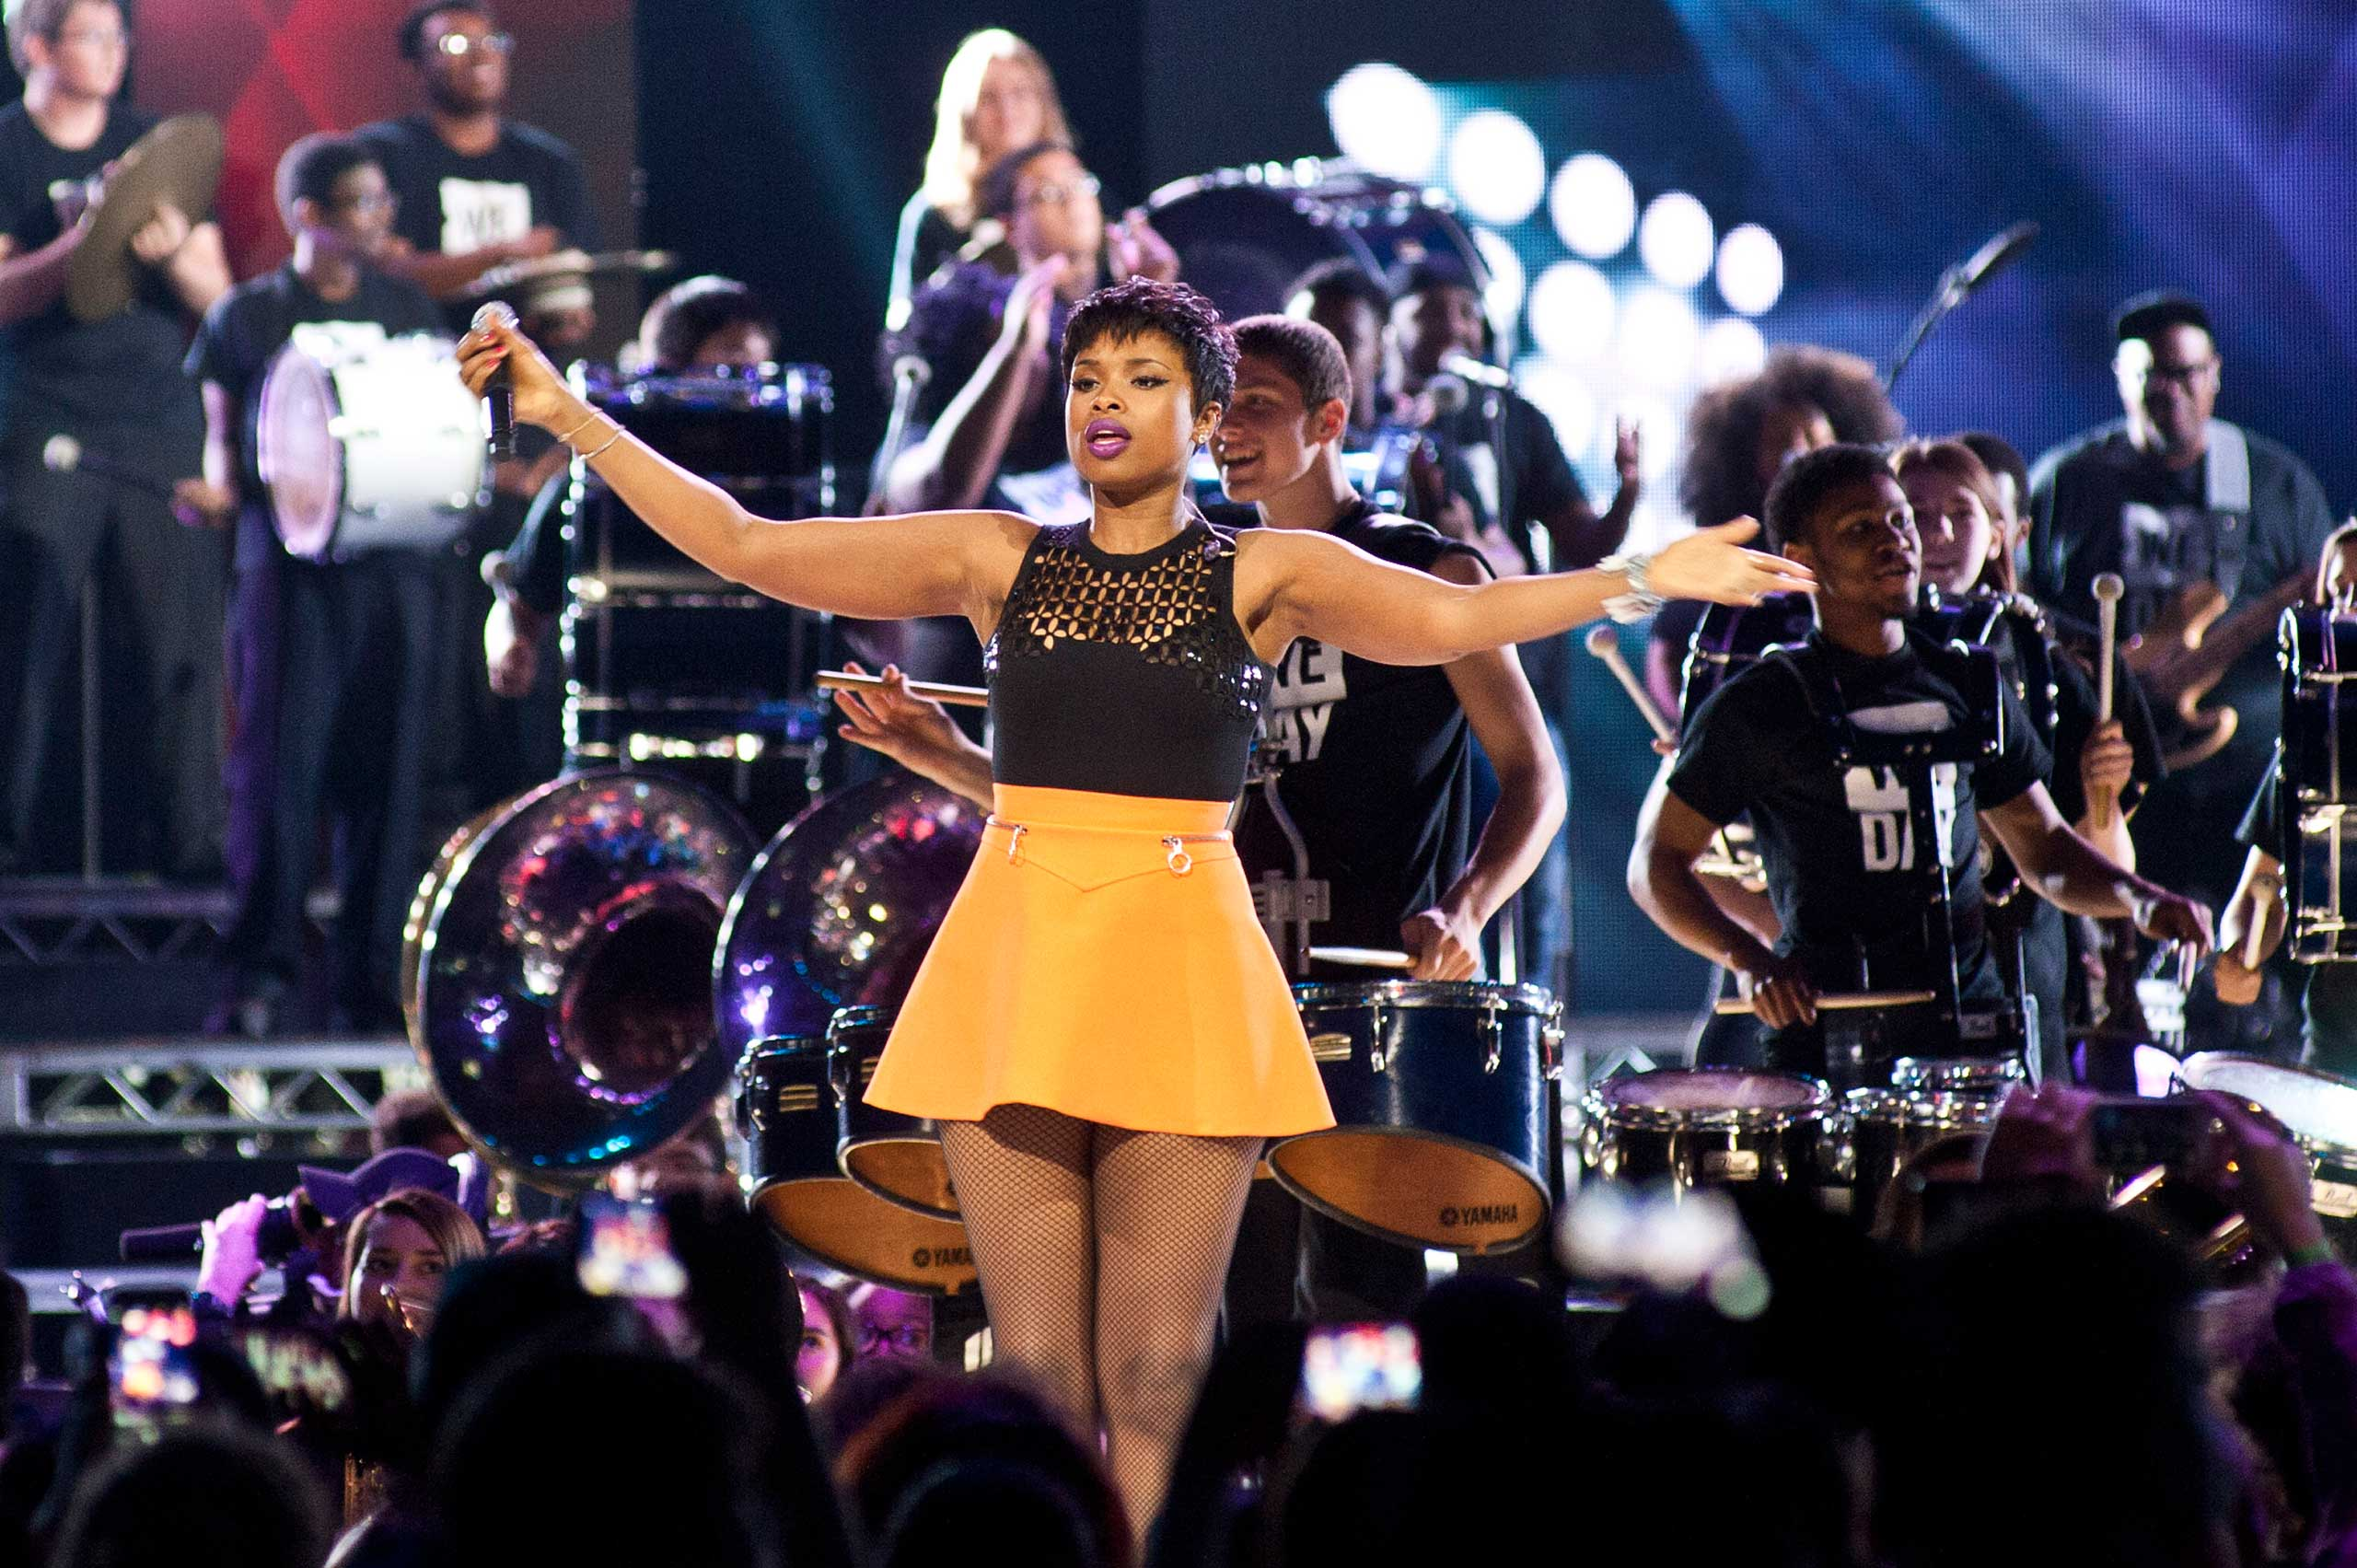 <b>Jennifer Hudson</b>, who came in 7th place on season 3, performs at We Day at Allstate Arena in Rosemont, Ill. on April 30, 2015.